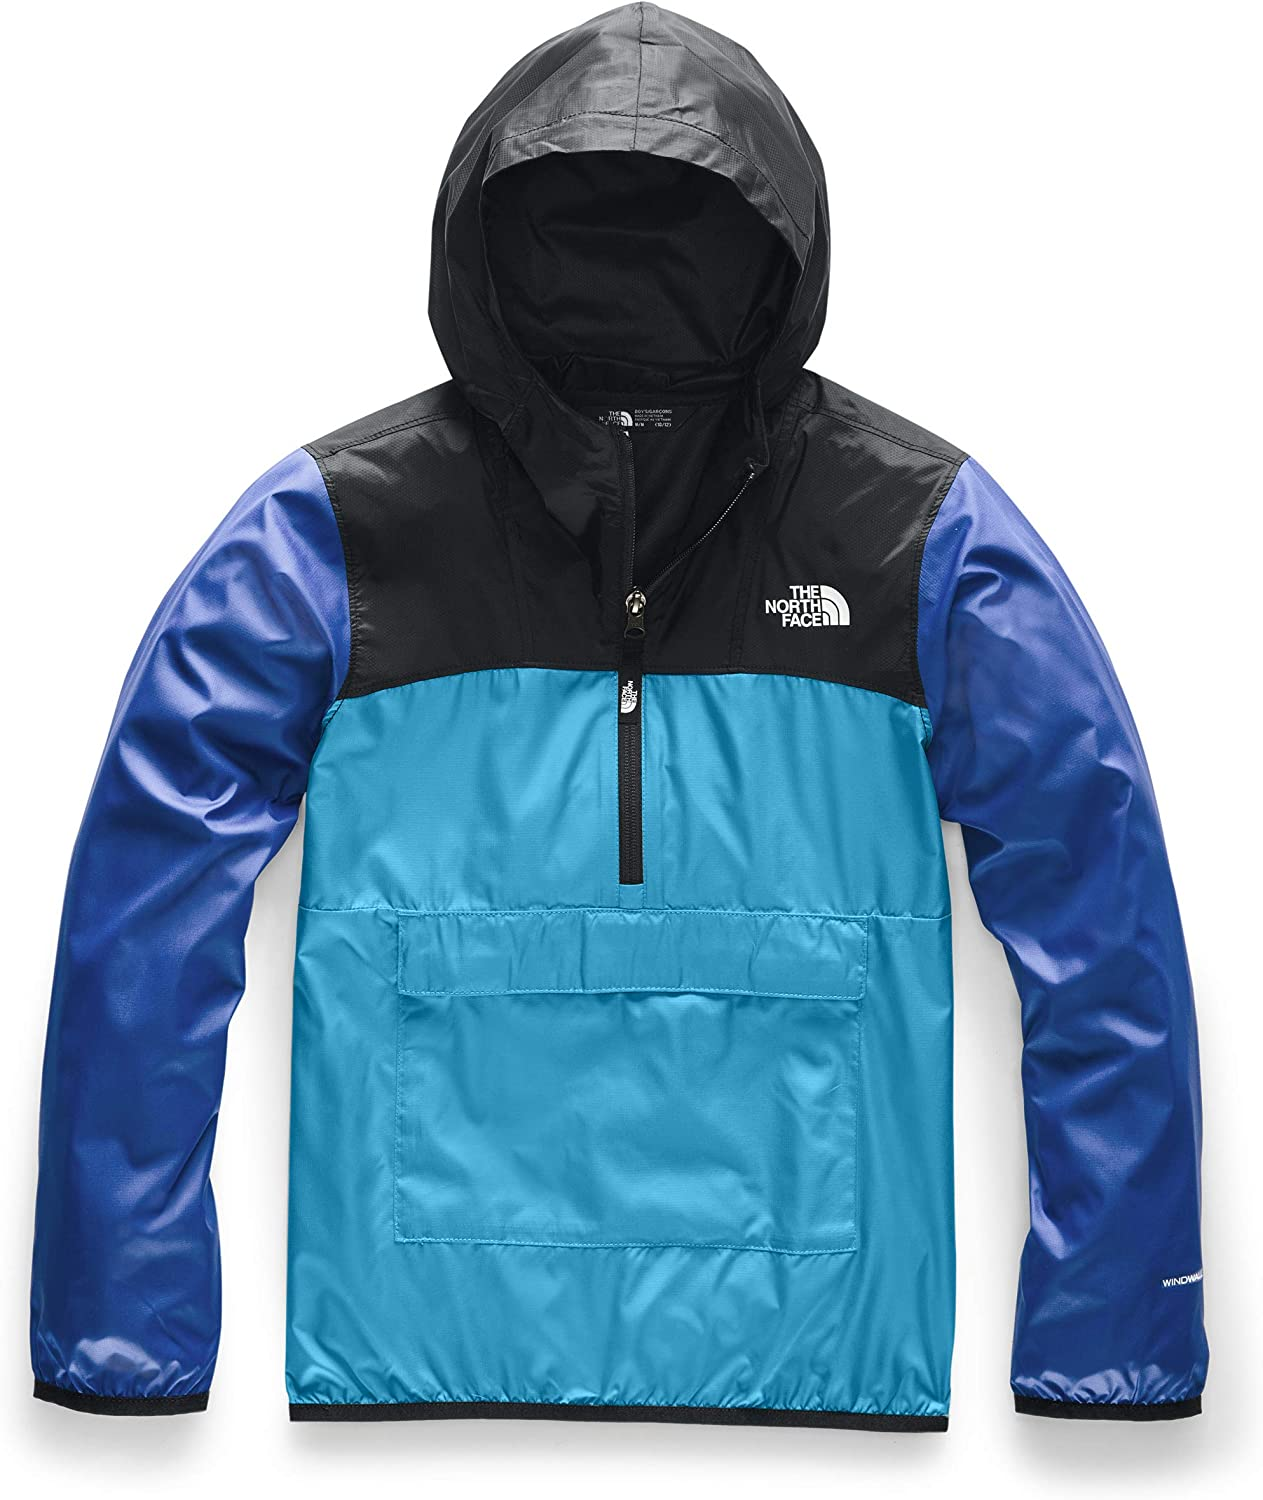 The North Face Boys Fanorak Jacket